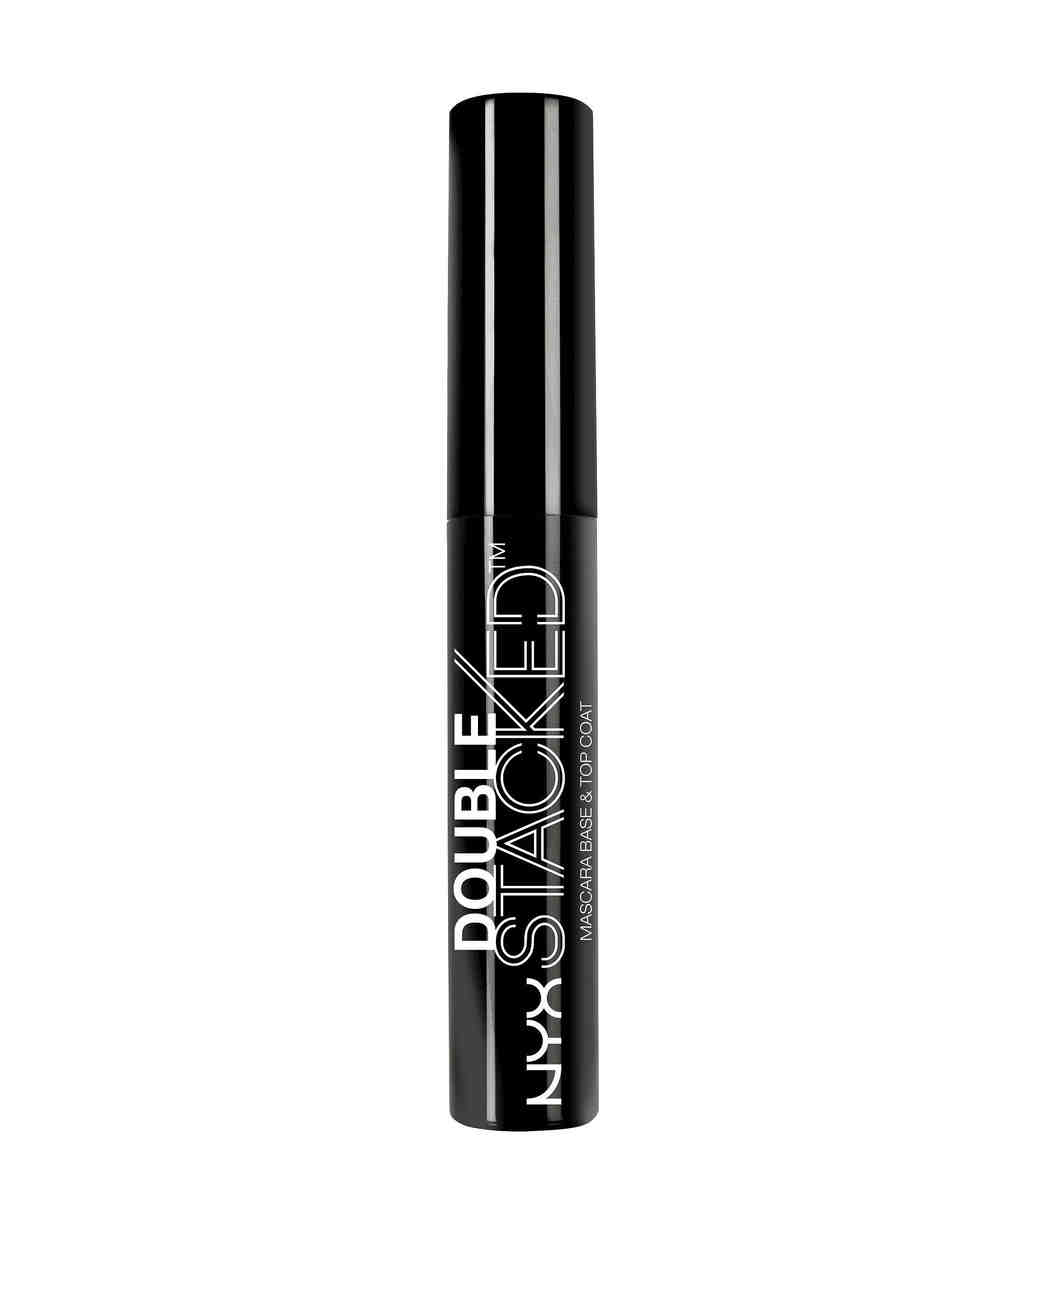 nyx cosmetics double stacked mascara